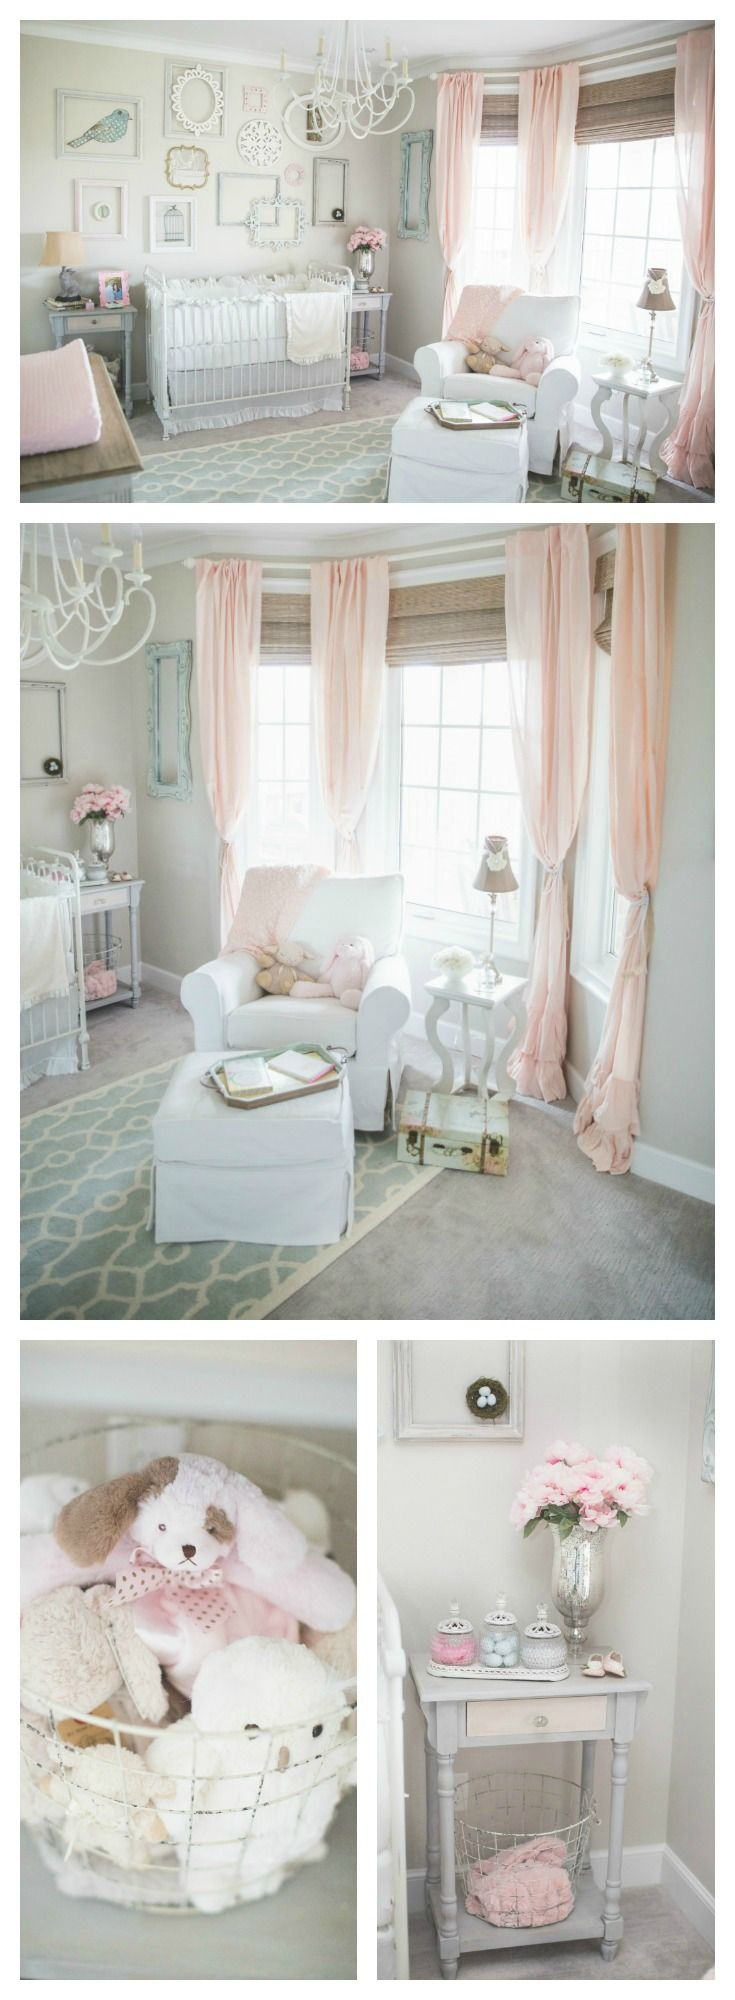 Best 25+ Baby girl nursery themes ideas only on Pinterest | Girl ...